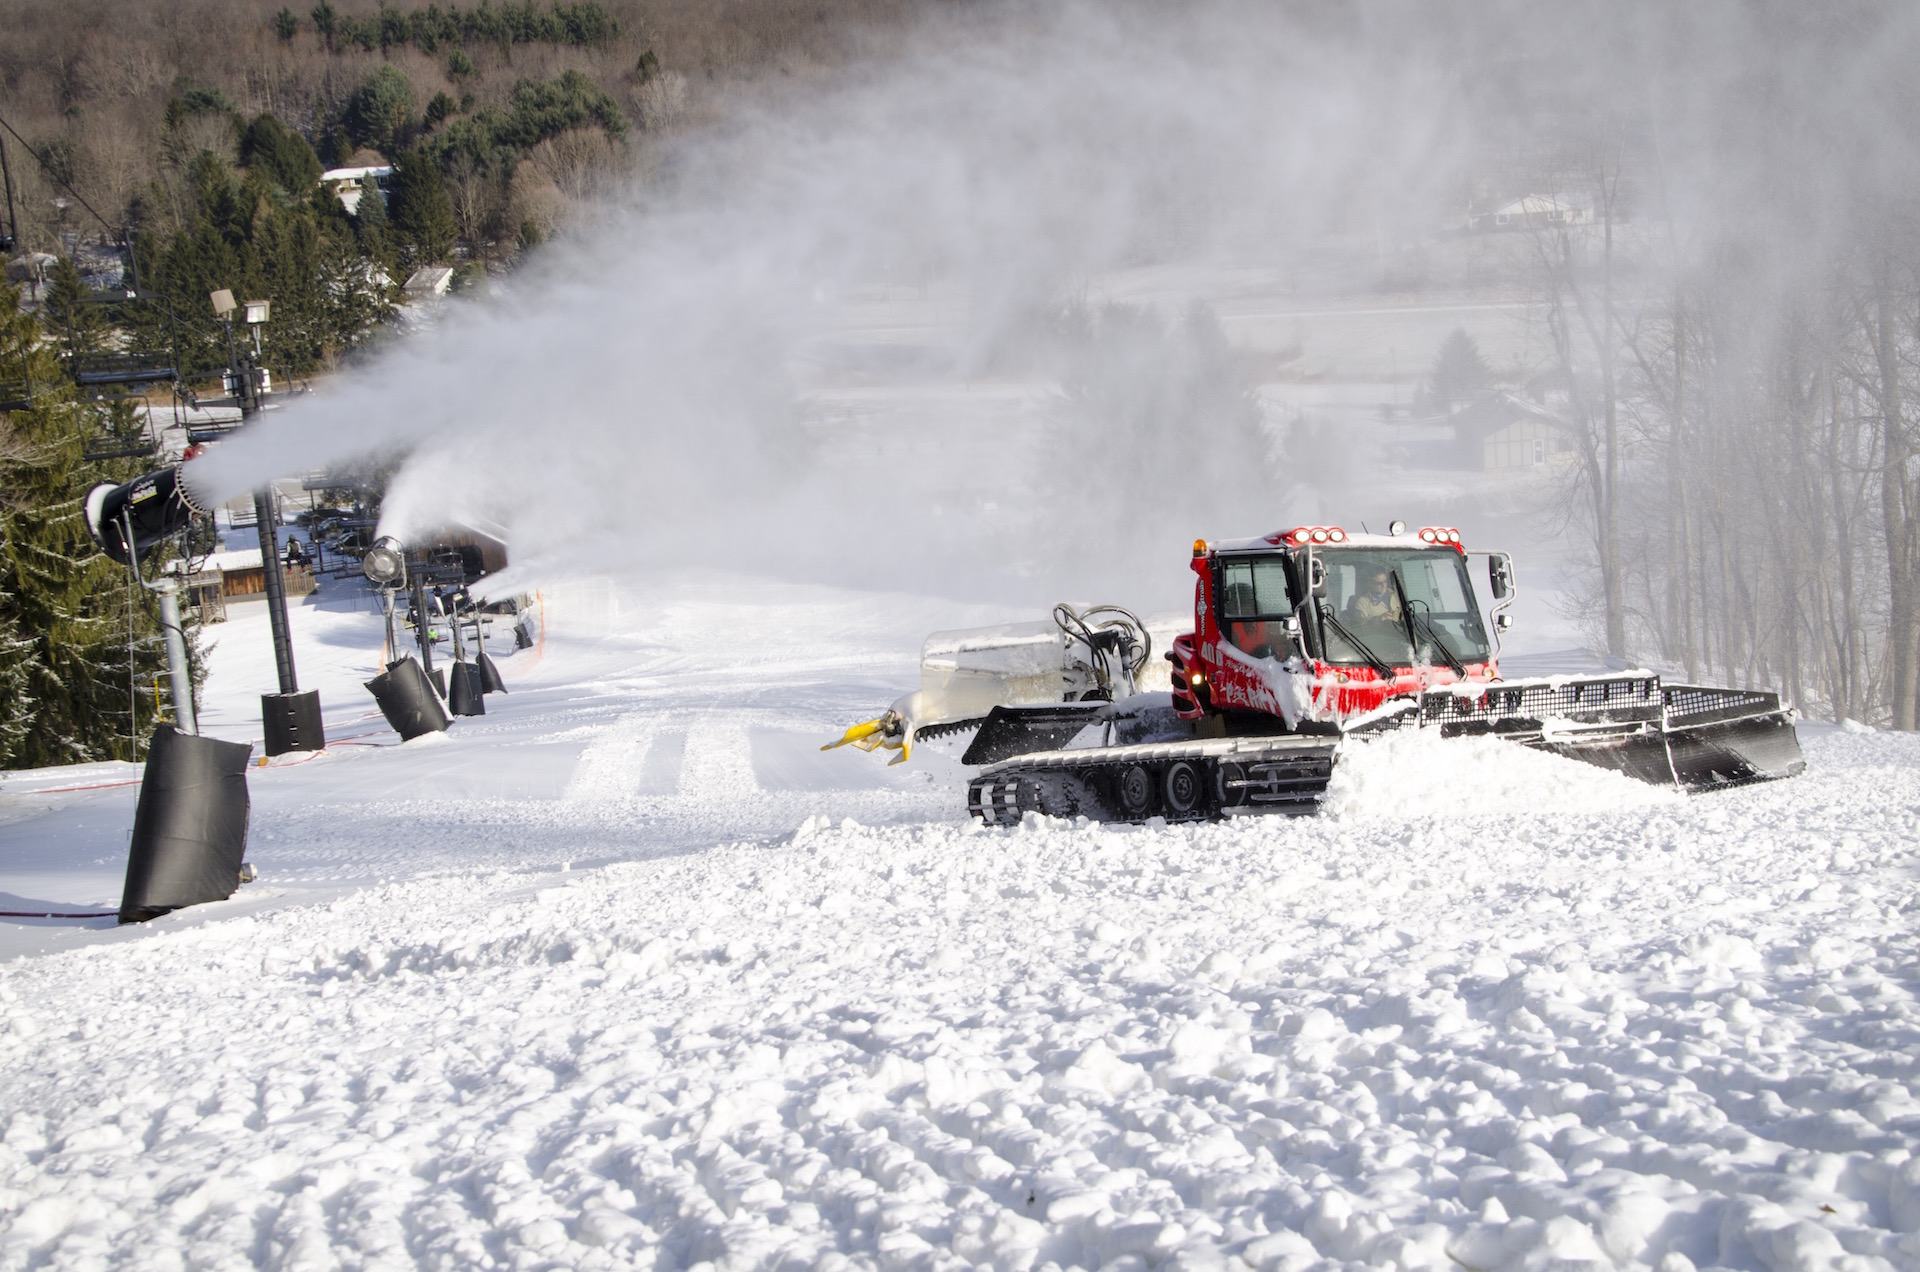 One of Snow Trails Pisten Bully Snow Cat Groomer Fleet